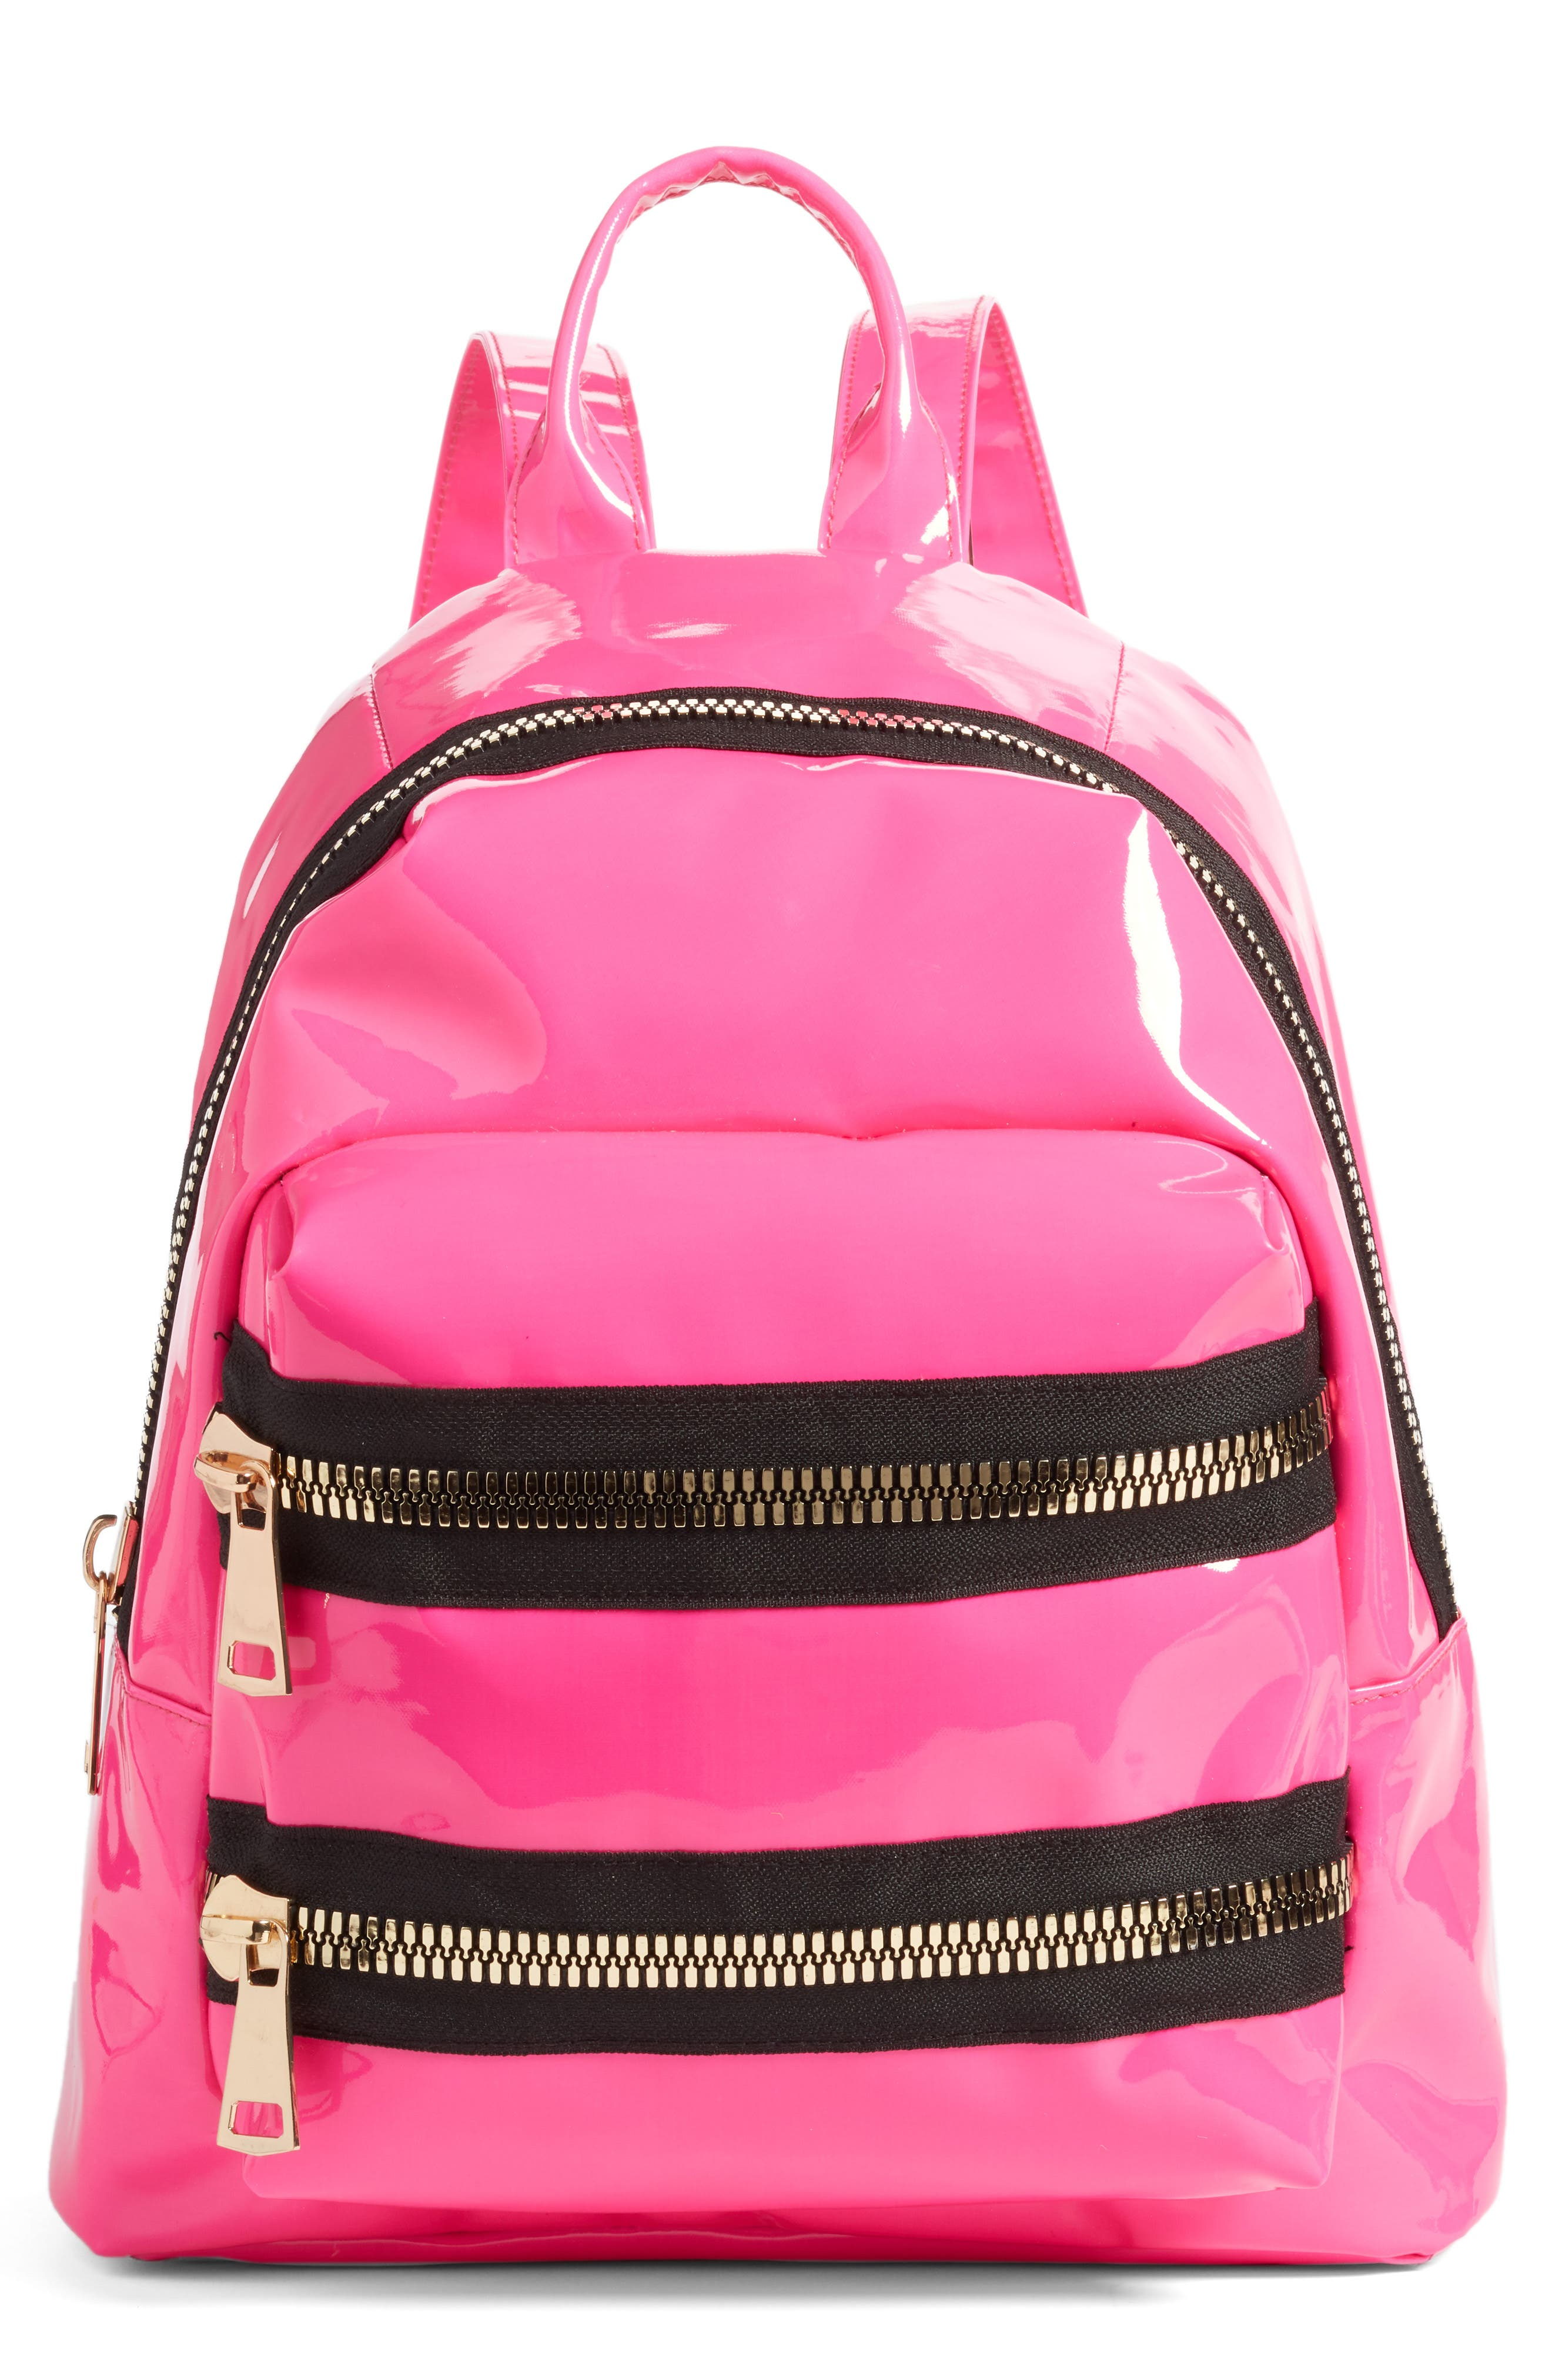 Jane & Berry Double Zip Faux Patent Leather Backpack - Pink